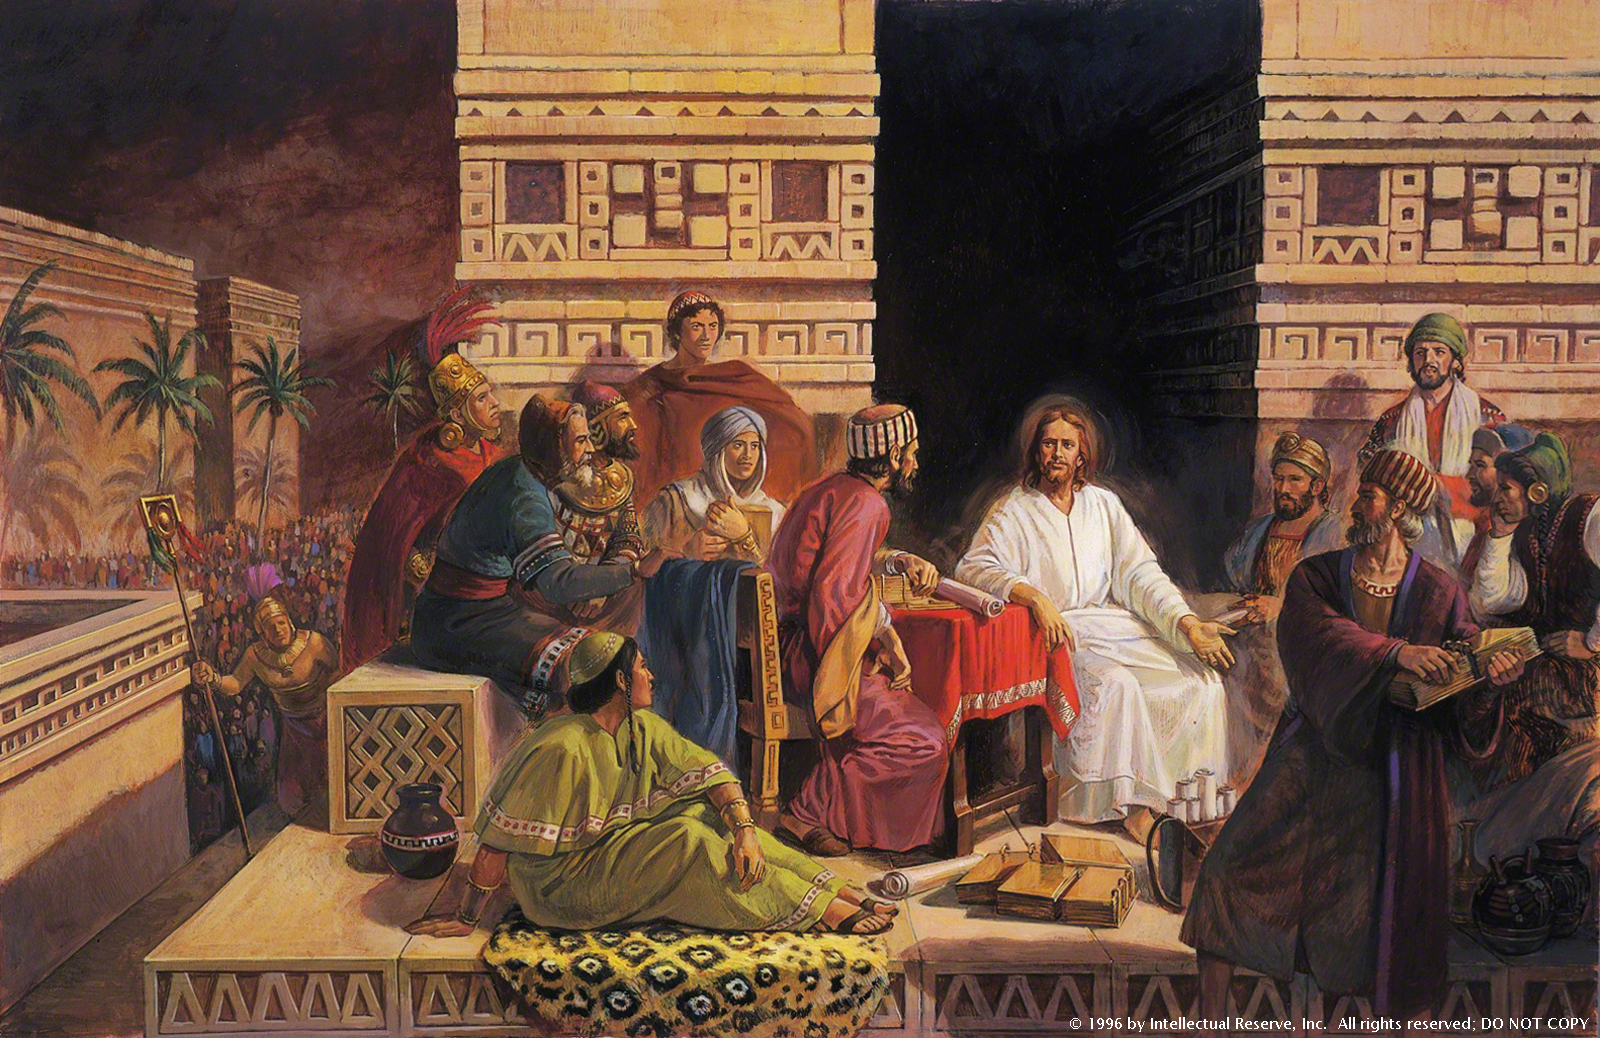 Christ wearing white robes, sitting among a group of people in the Americas while they bring Him plates of their records.